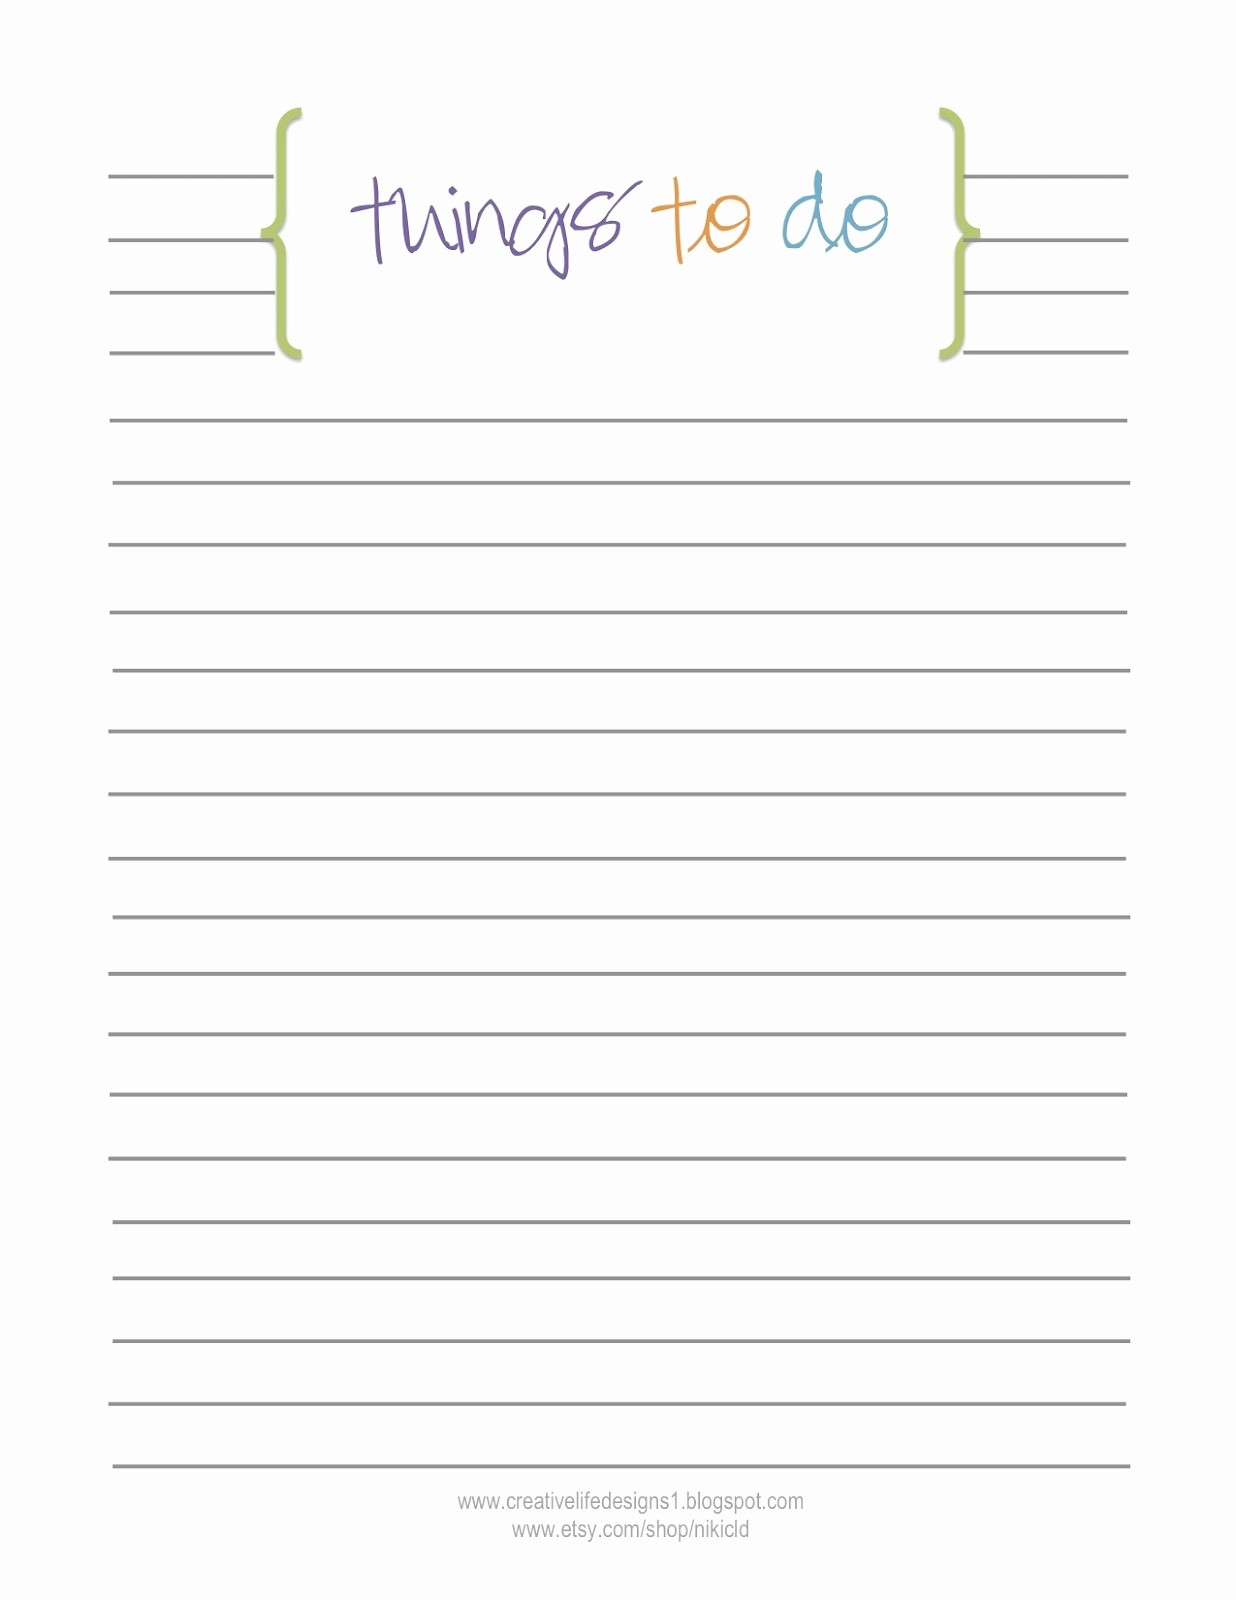 Things to Do Checklist Template Inspirational Creative Life Designs Free Printables